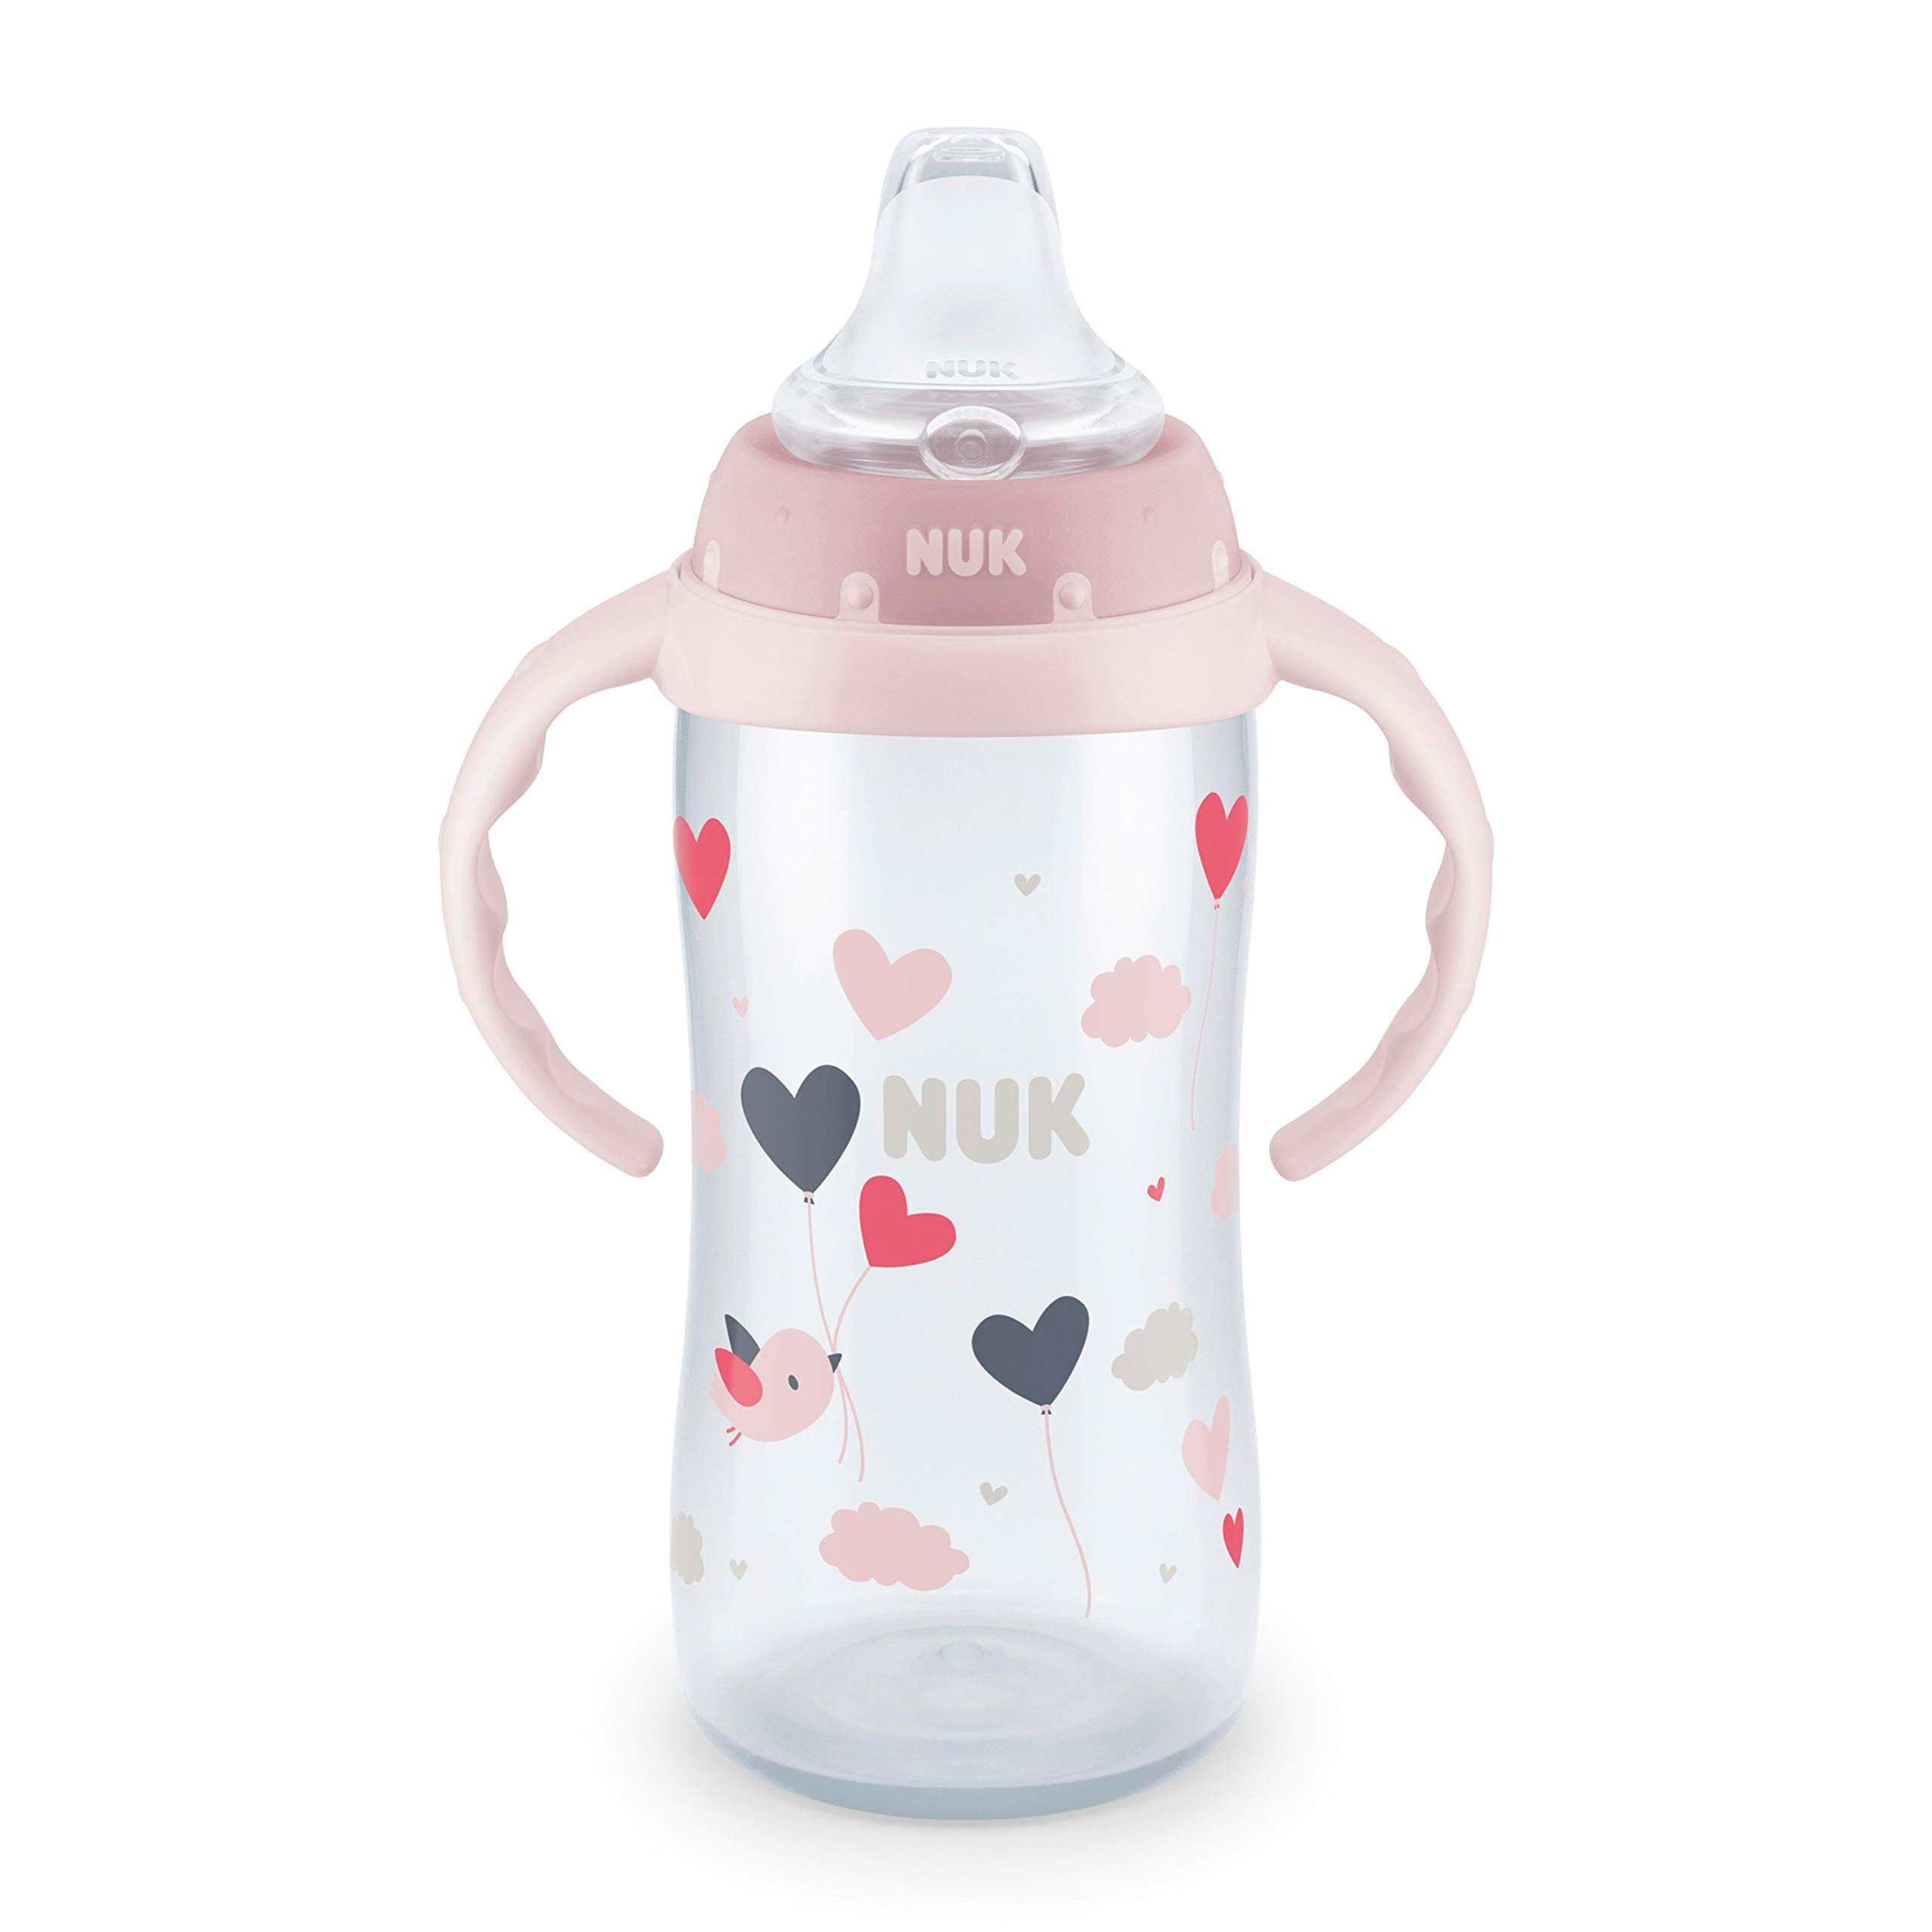 NUK Learner Cup, 10oz, Hearts